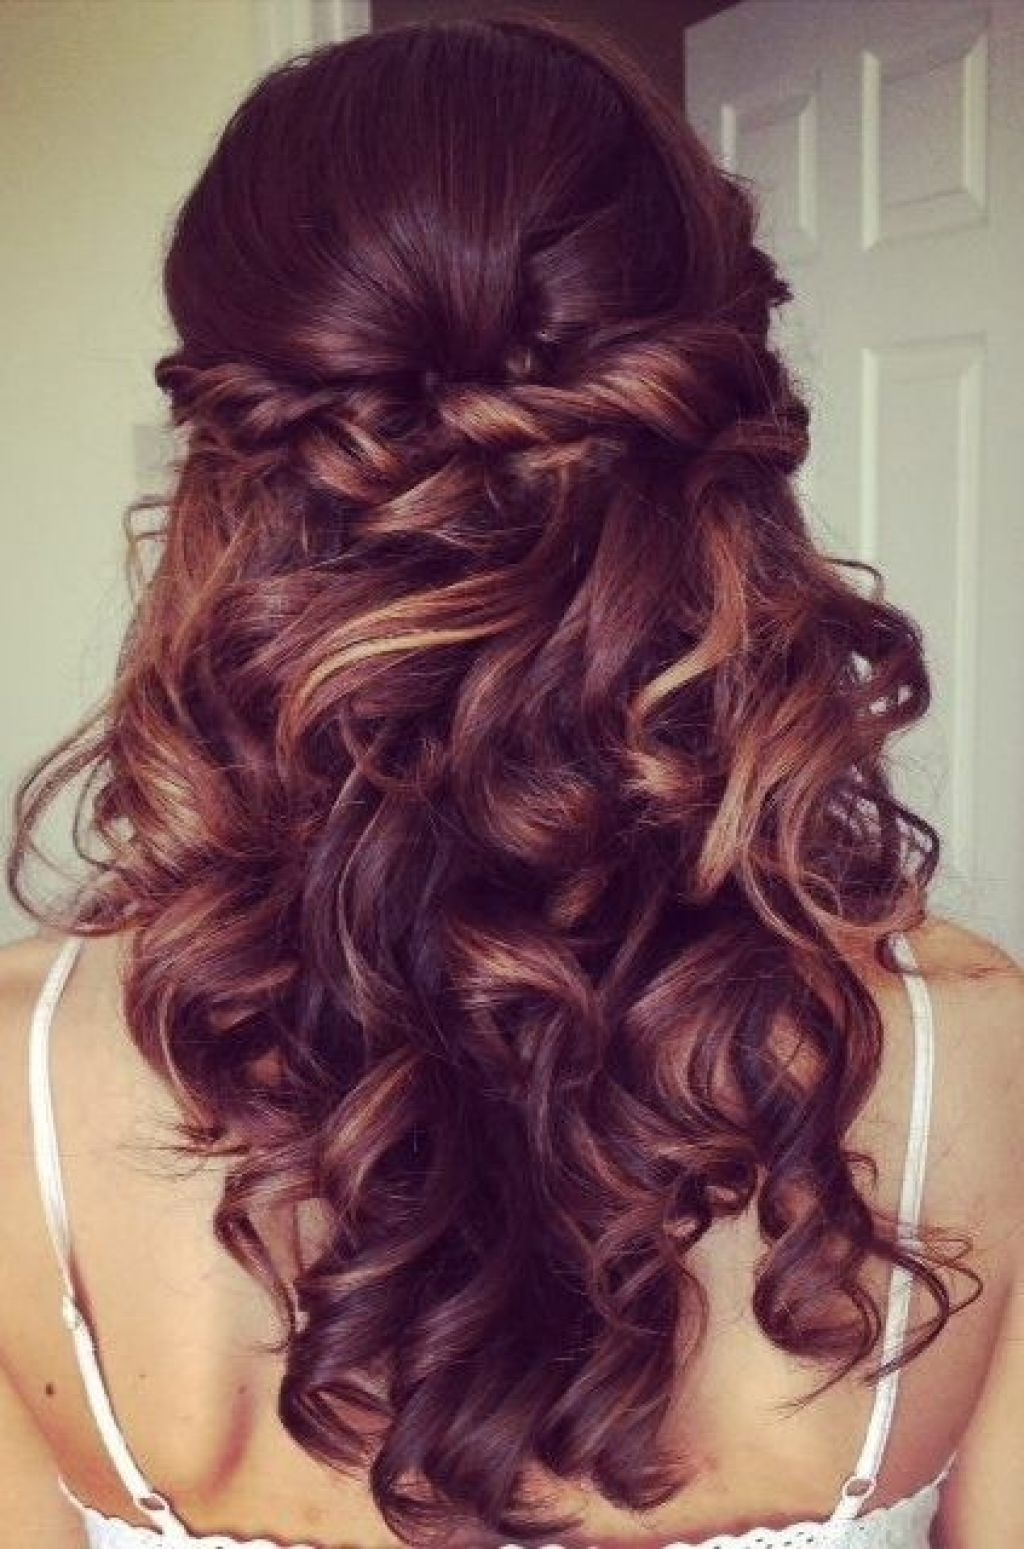 Half Up Down Prom Hairstyles Can Elegant Cute Formal Hair Curly Inside Current Hair Half Up Half Down Wedding Hairstyles Long Curly (View 9 of 15)